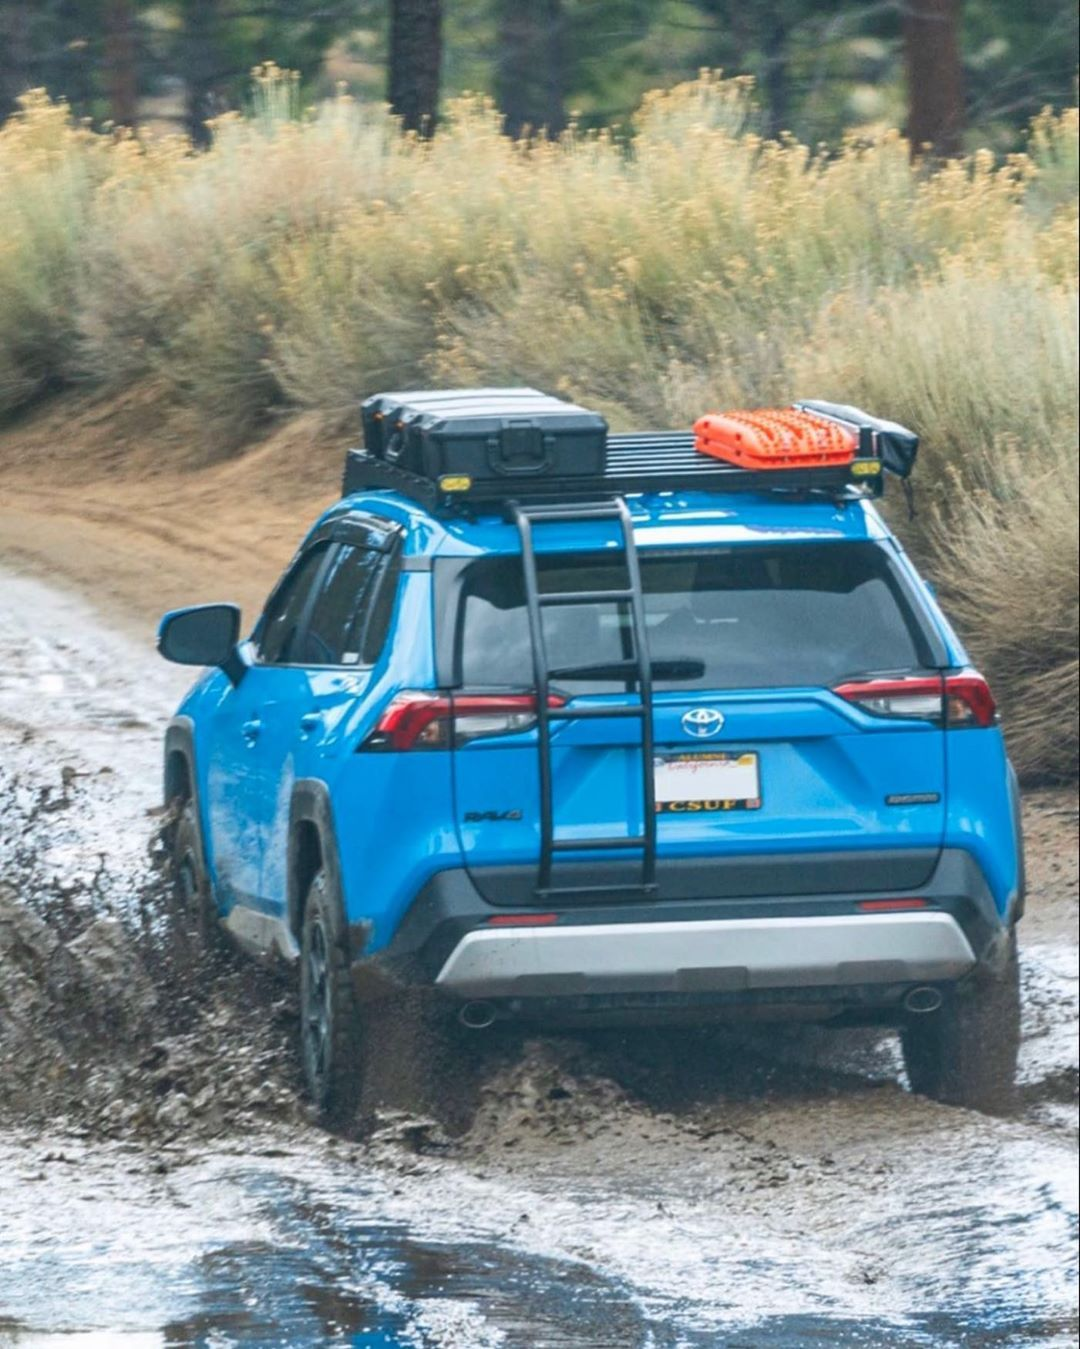 Toyota Rav4 Fabrication On Instagram Beast Mode If You Haven T Already Check Out This Guys Page Blueyota4 Rav4community Che In 2020 Toyota Rav4 Rav4 Toyota Suv